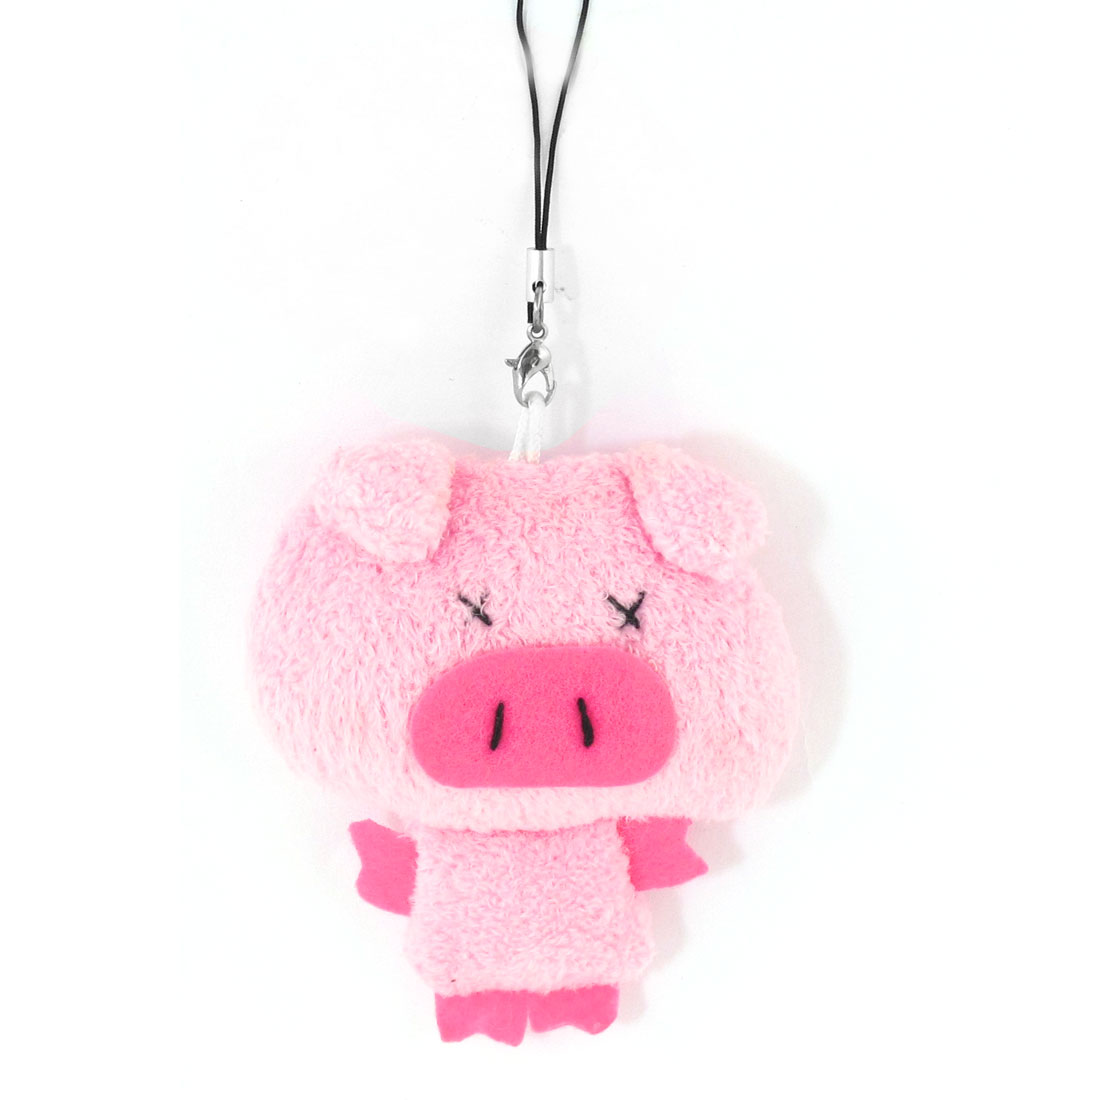 Pink Soft Fleece Pig Designed Pendant Cell Phone Strap for Lovers